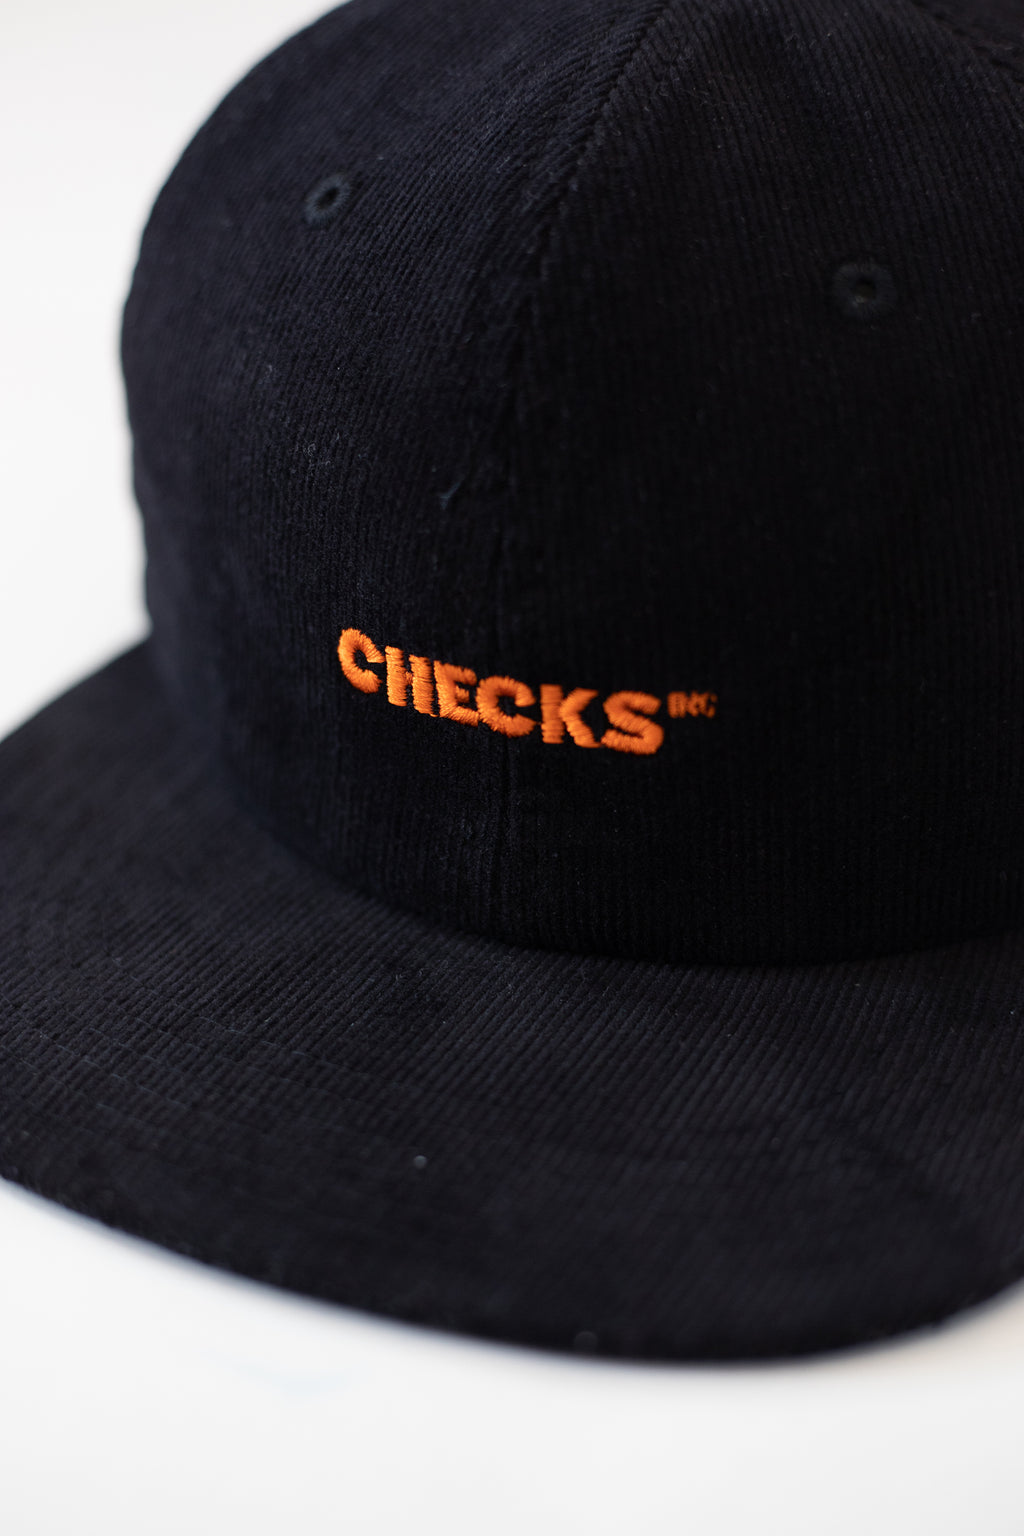 Classic Cord Snapback Black | CHECKS DOWNTOWN